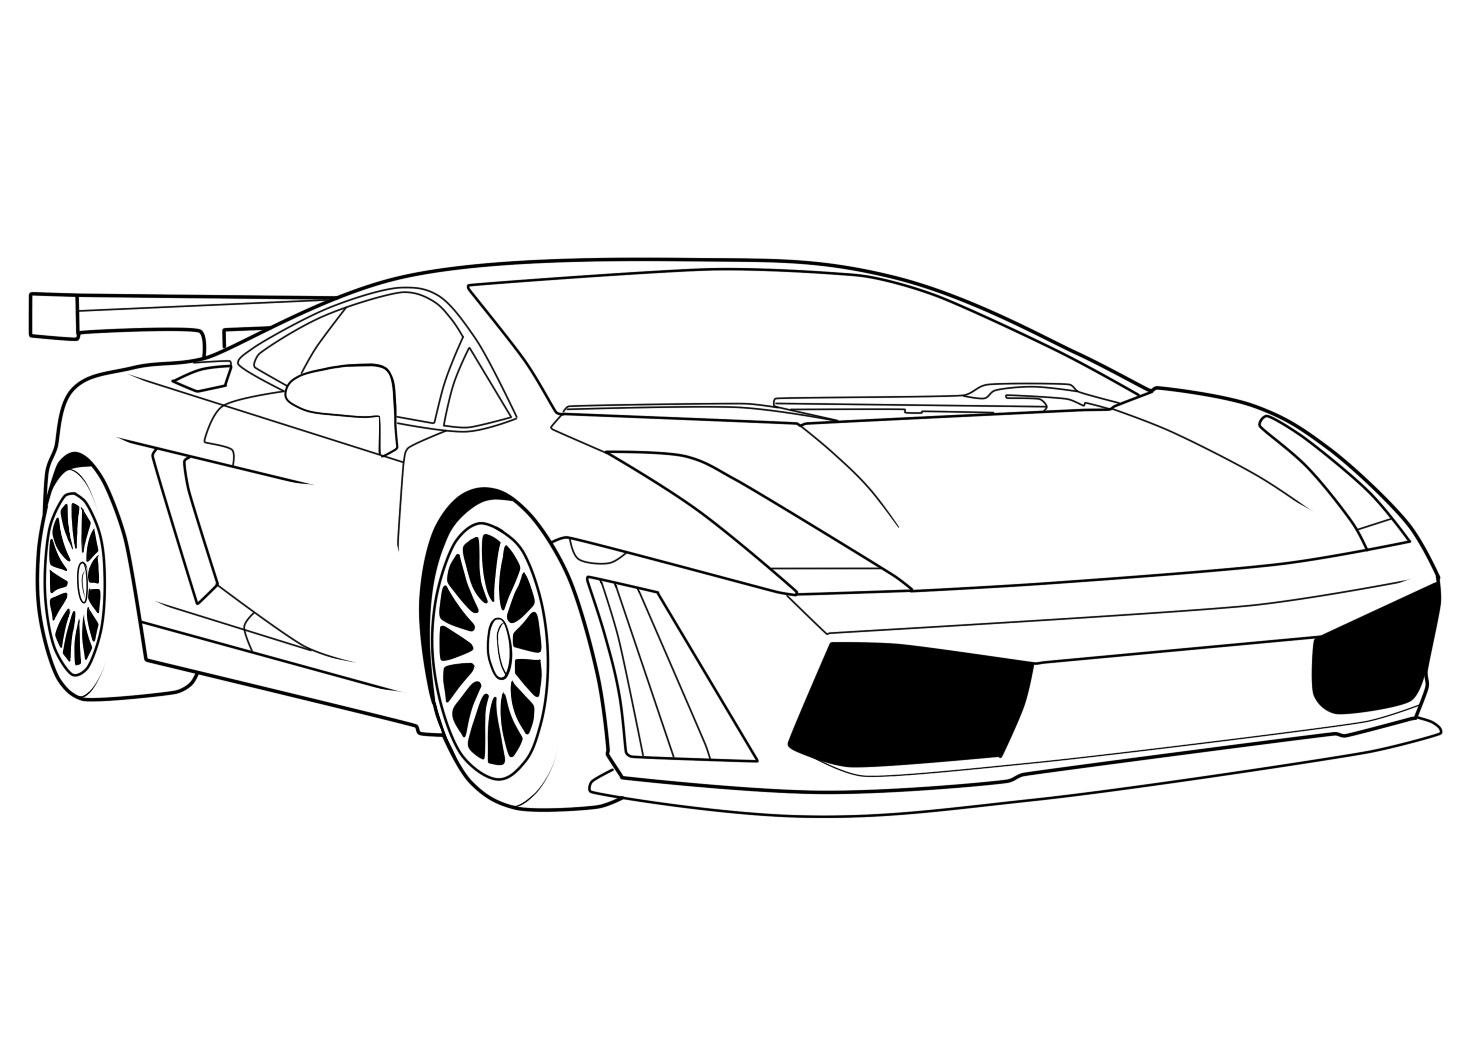 car colouring muscle car coloring pages to download and print for free car colouring